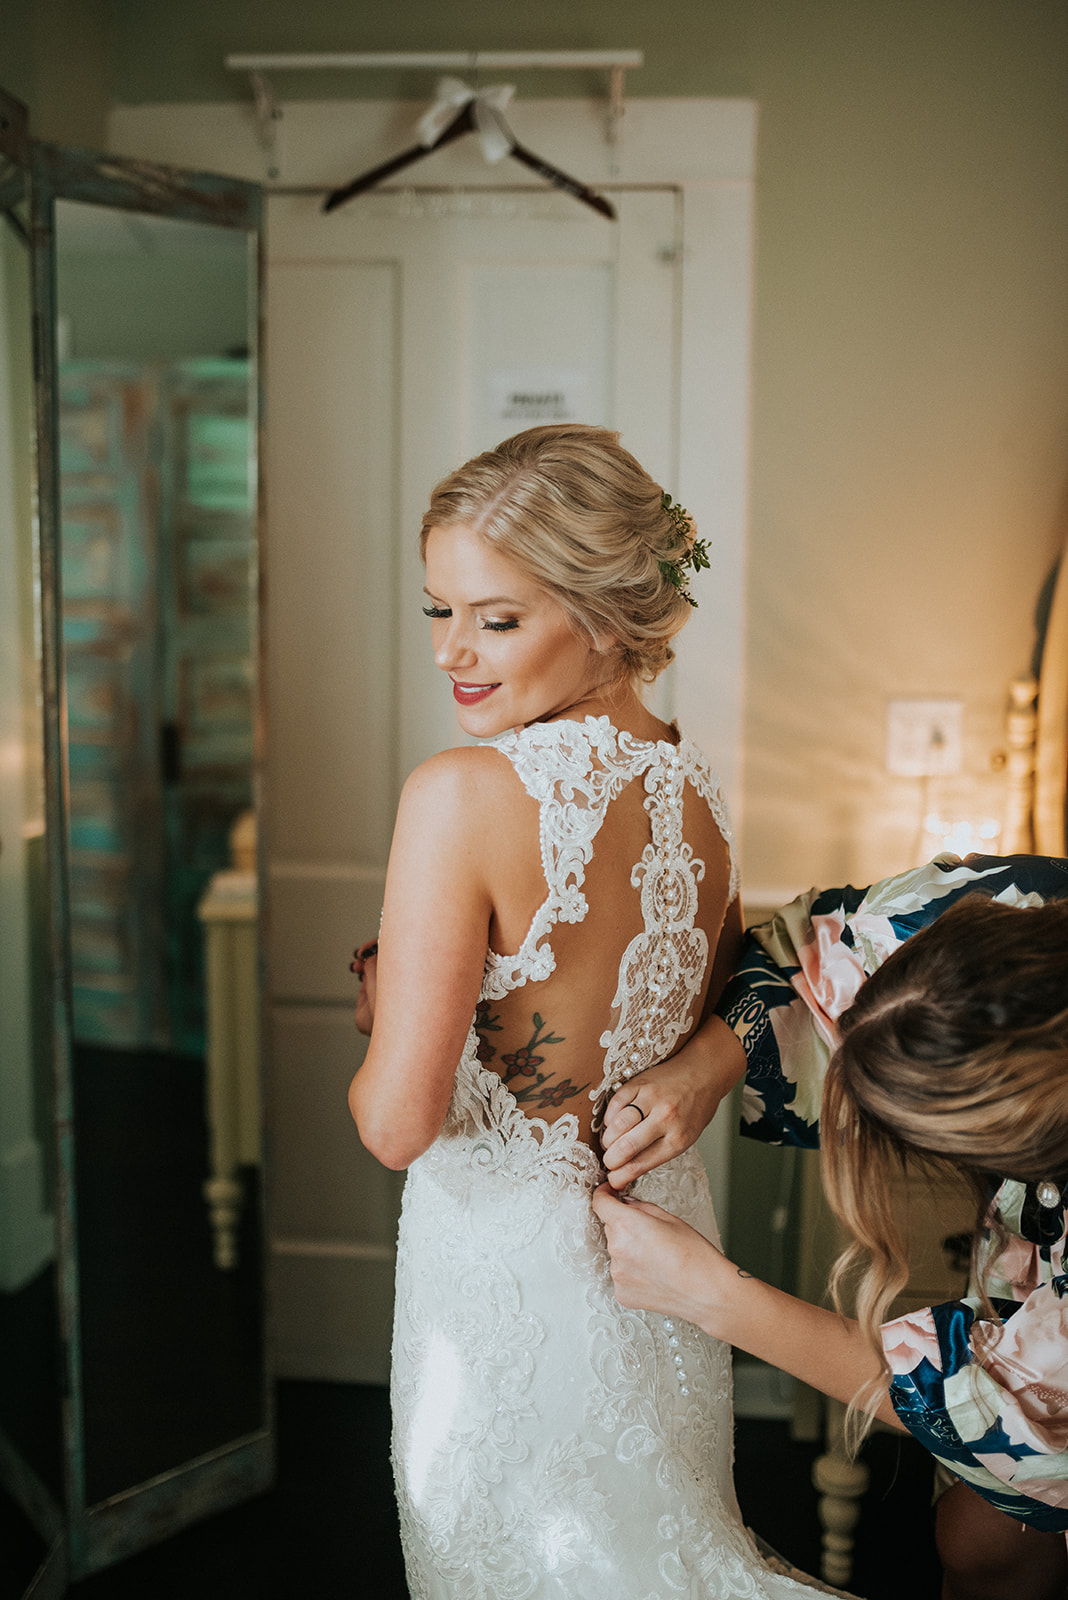 overthevineswisconsinwedding_0298.jpg